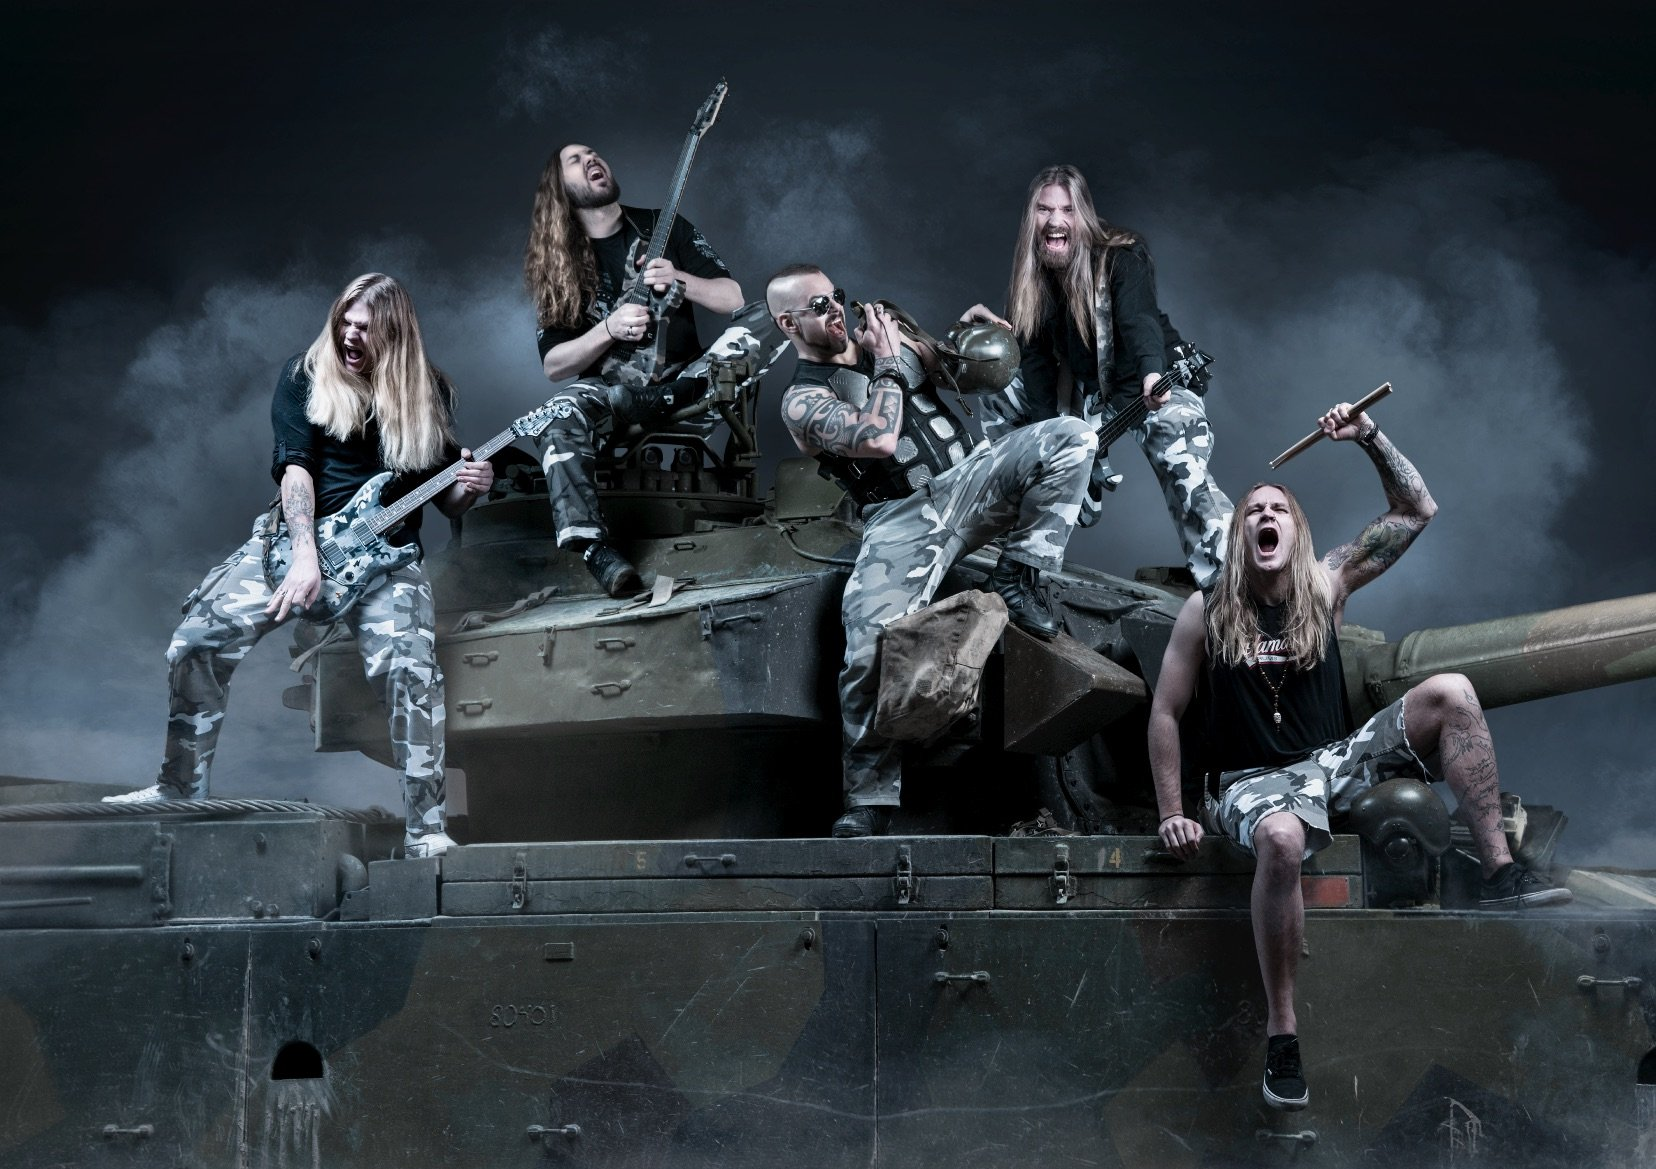 sabaton world of tanks интервью